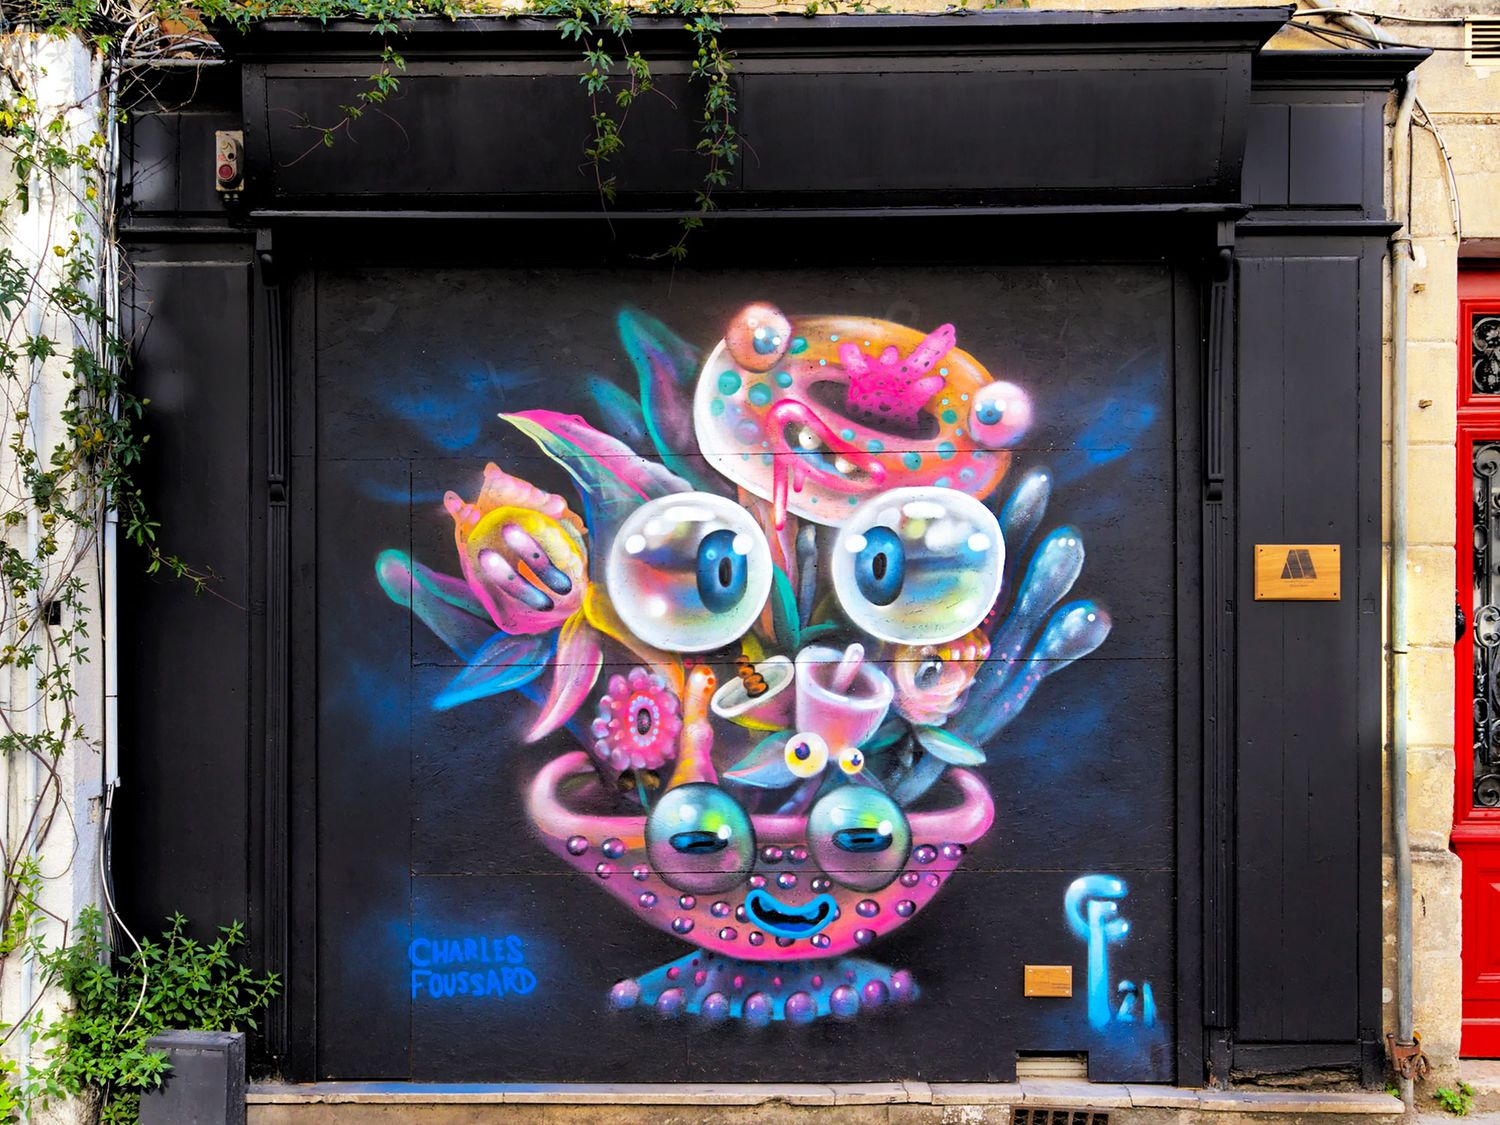 A glimpse of one of the last murals done by Charles Foussard on a storefront in the streets of Bordeaux. Rue du palais Gallien (photo by Stéphane ©Graf'In'Gironde).